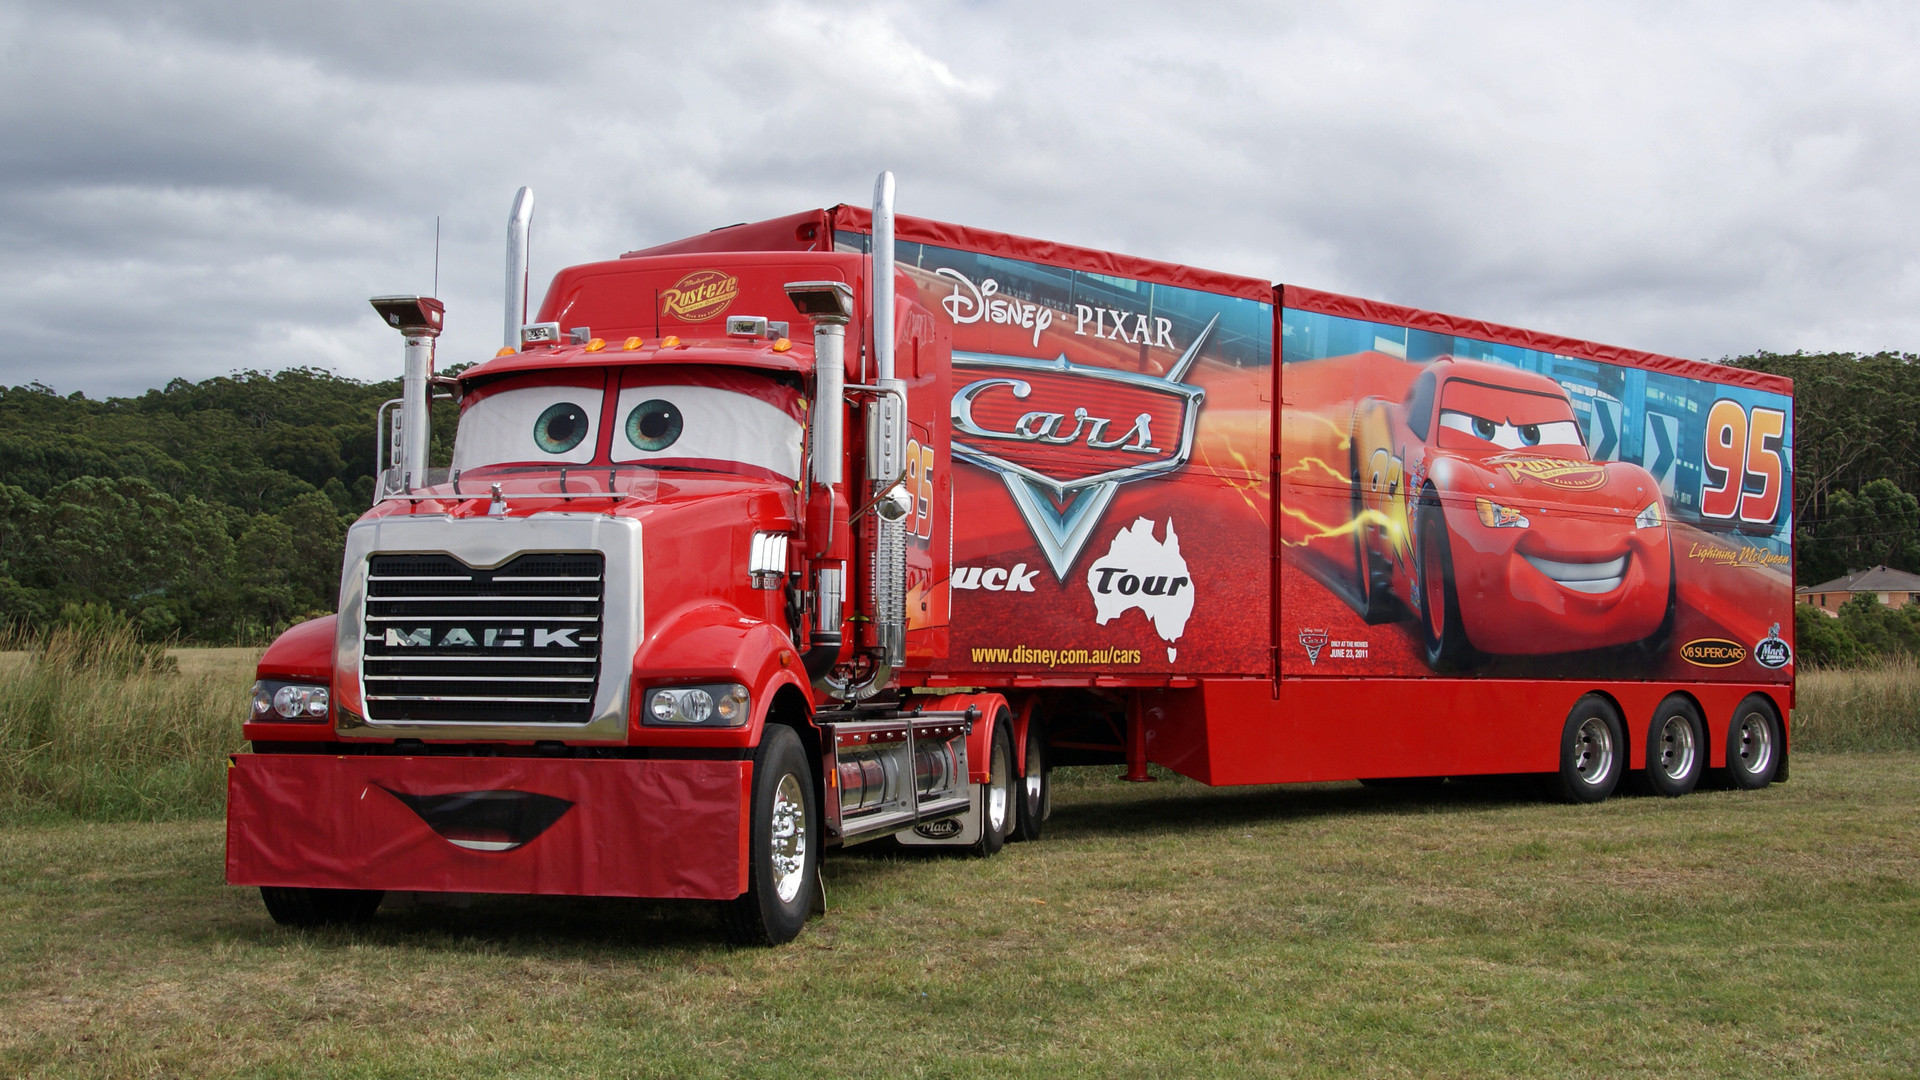 Mack semi-truck – with the movie Cars!